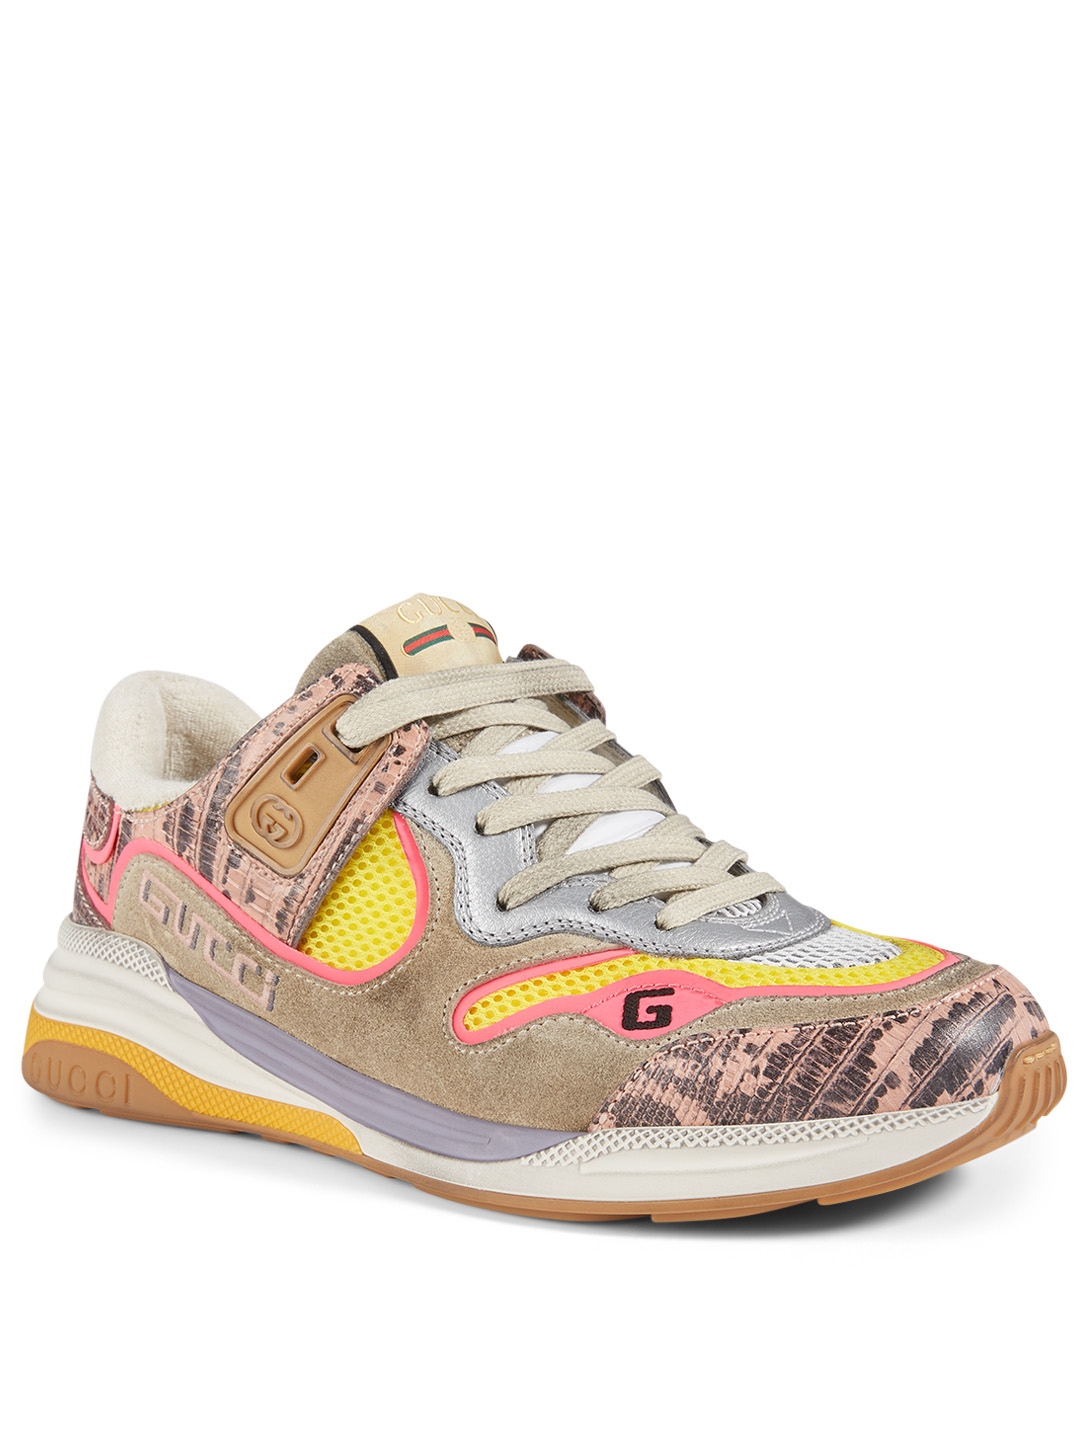 GUCCI Ultrapace Mixed-Media Sneakers Women's Multi